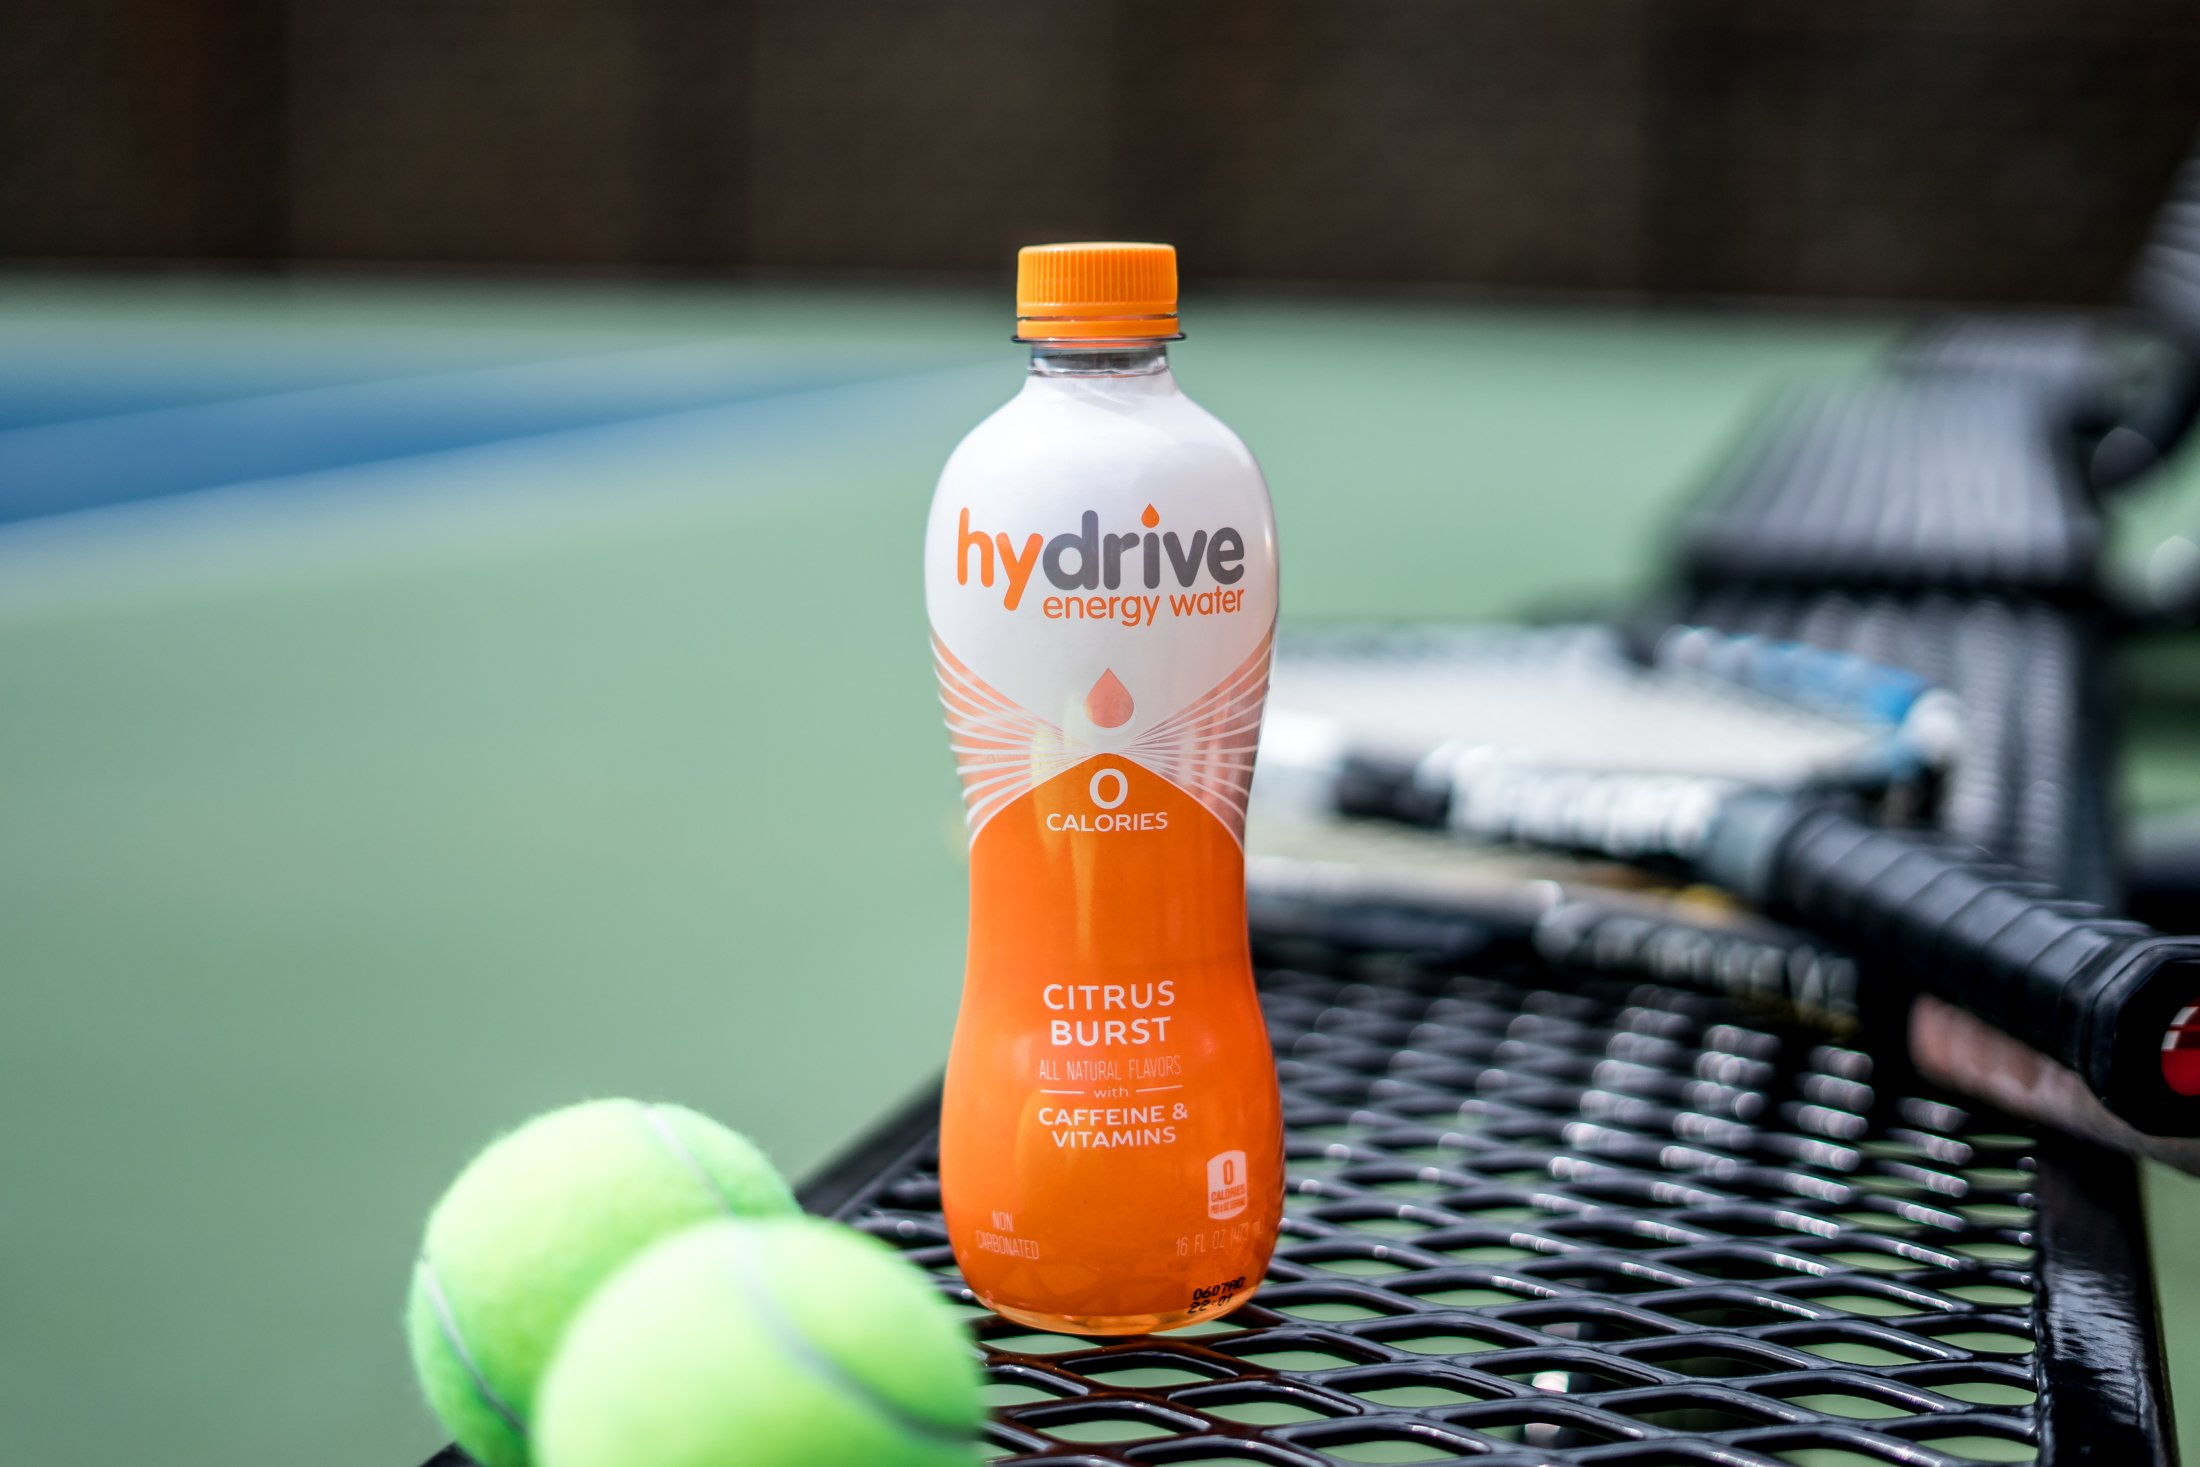 Hydrive Energy Water | Citrus Burst | Sugar Free | Zero Calories | All Natural Flavors | Natural Energy | 16 oz (Pack of 12) by Hydrive (Image #7)